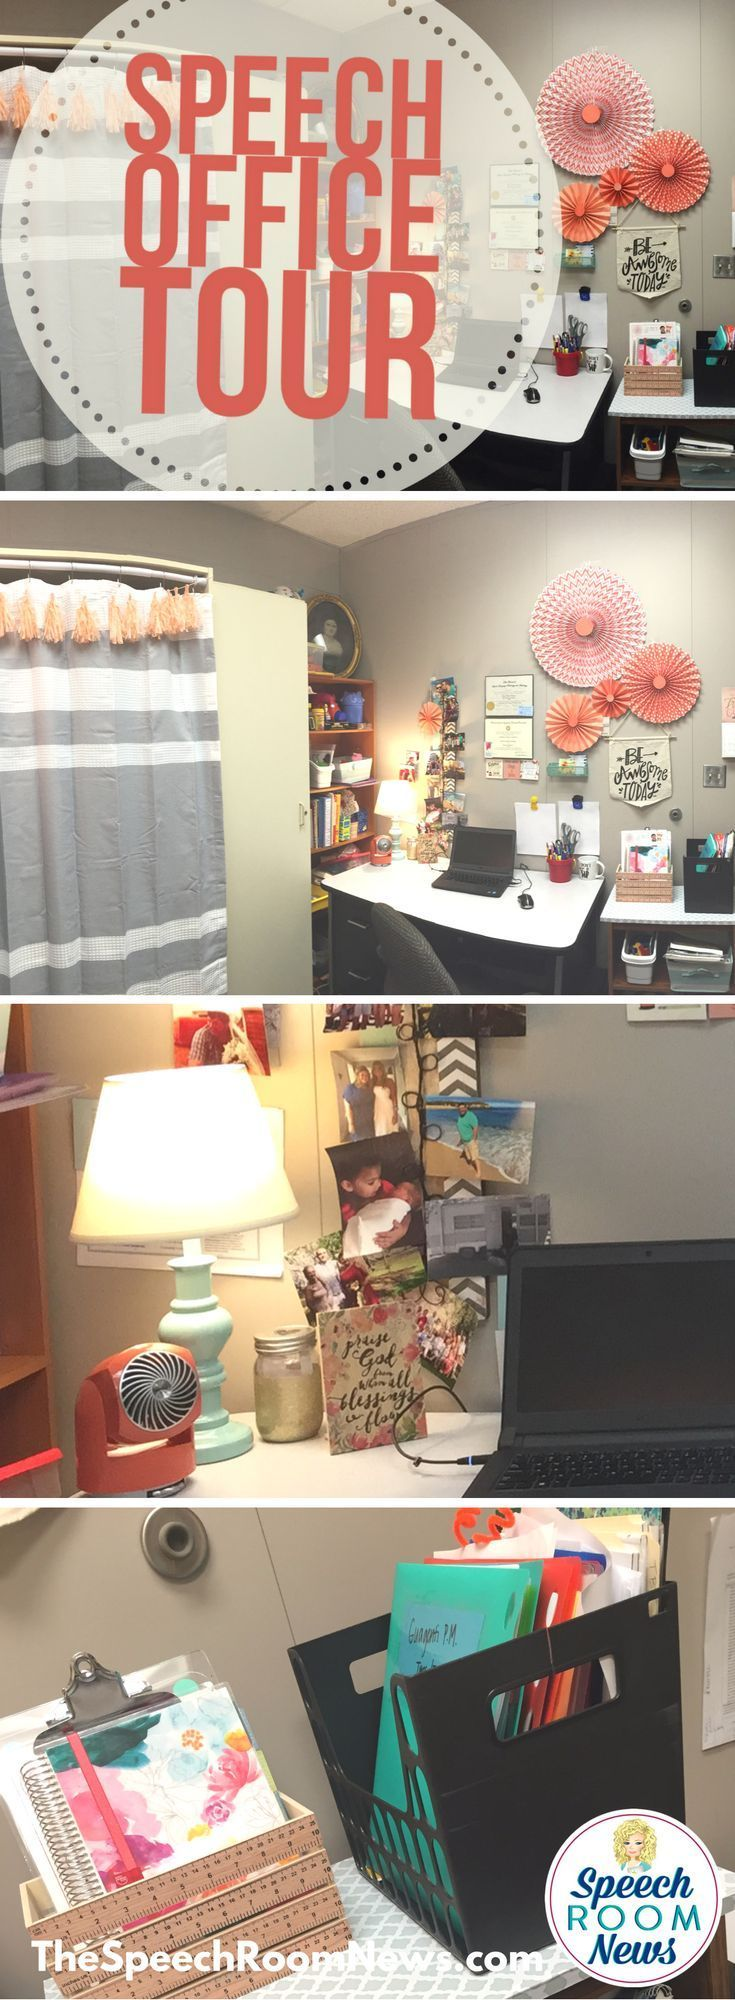 Speech Therapy Office Tour images